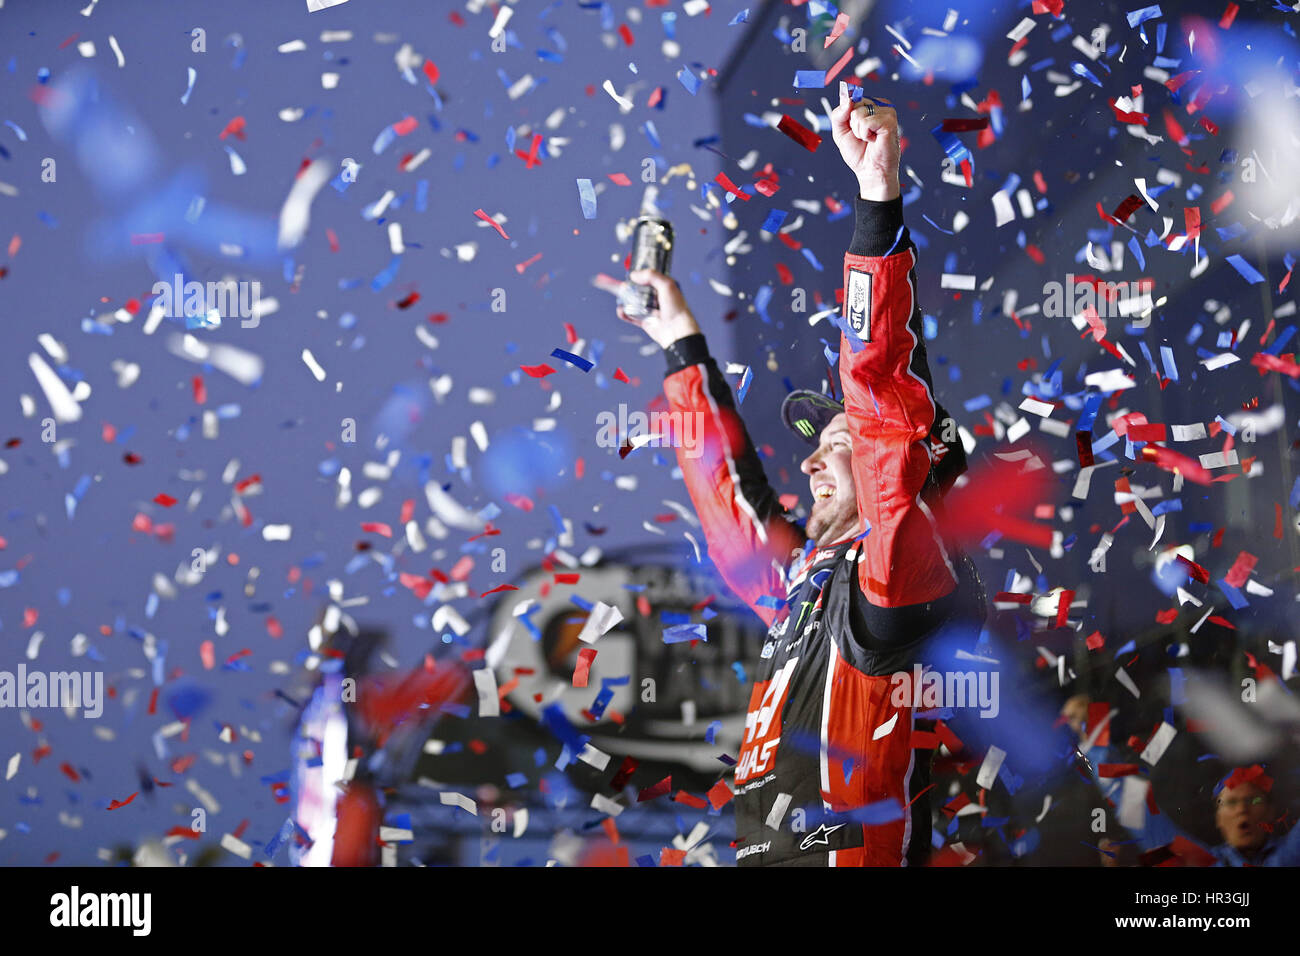 Daytona Beach, Florida, USA. 26. Februar 2017. 26. Februar 2017 - Daytona Beach, Florida, USA: Kurt Busch (41) gewinnt Stockfoto